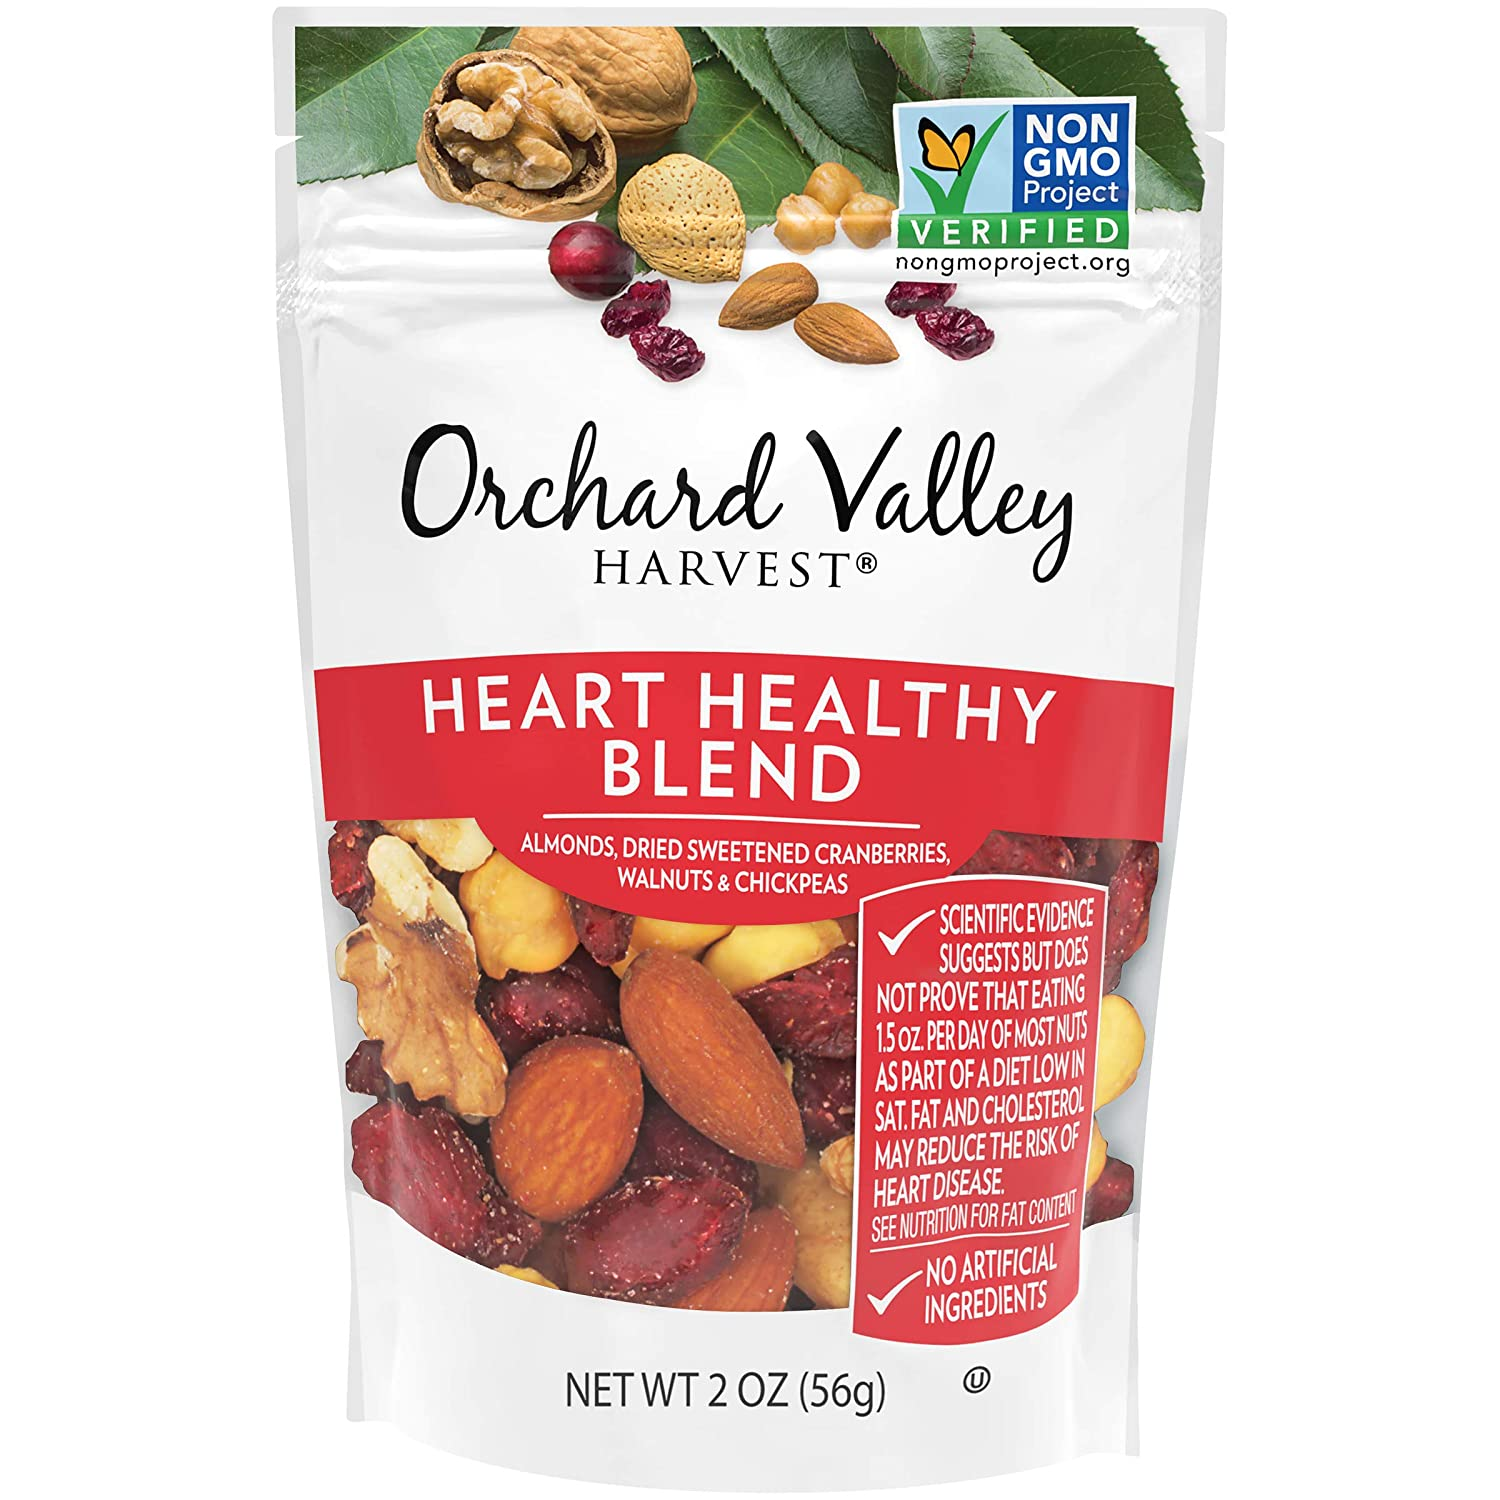 ORCHARD VALLEY HARVEST Heart Healthy Blend, 2 oz (Pack of 14), Non-GMO, No Artificial Ingredients